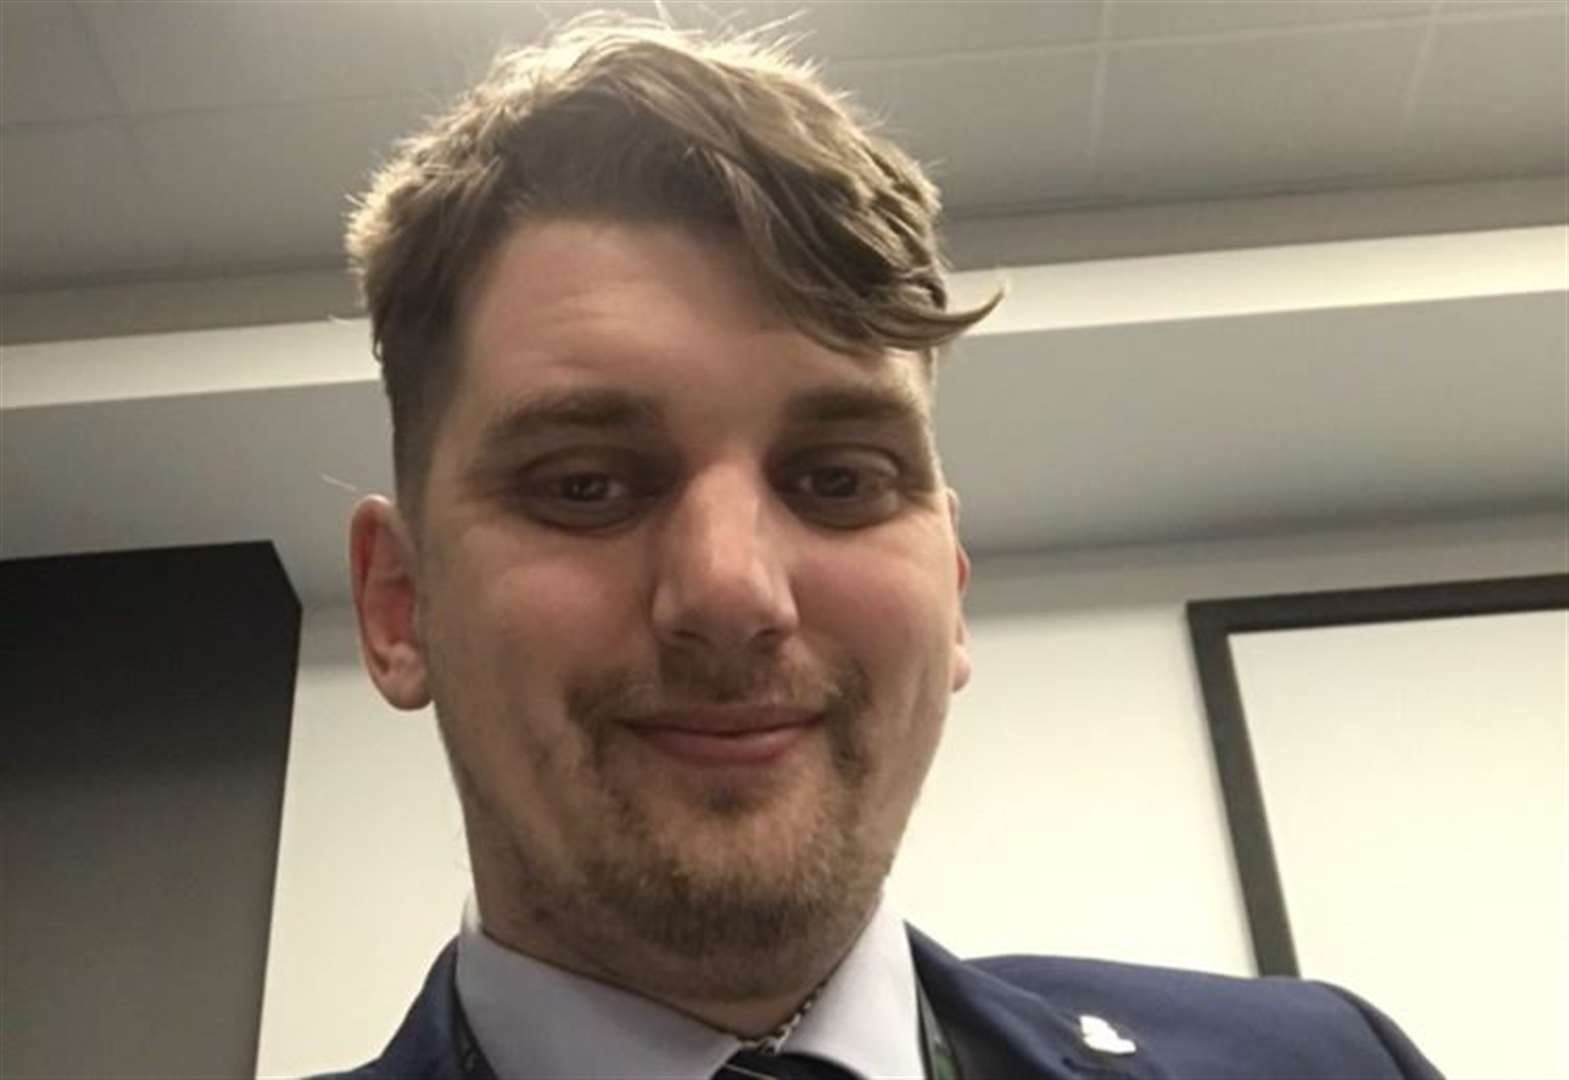 District councillor and former soldier Johno Lee to battle for Bolton South East seat in pre-Christmas General Election